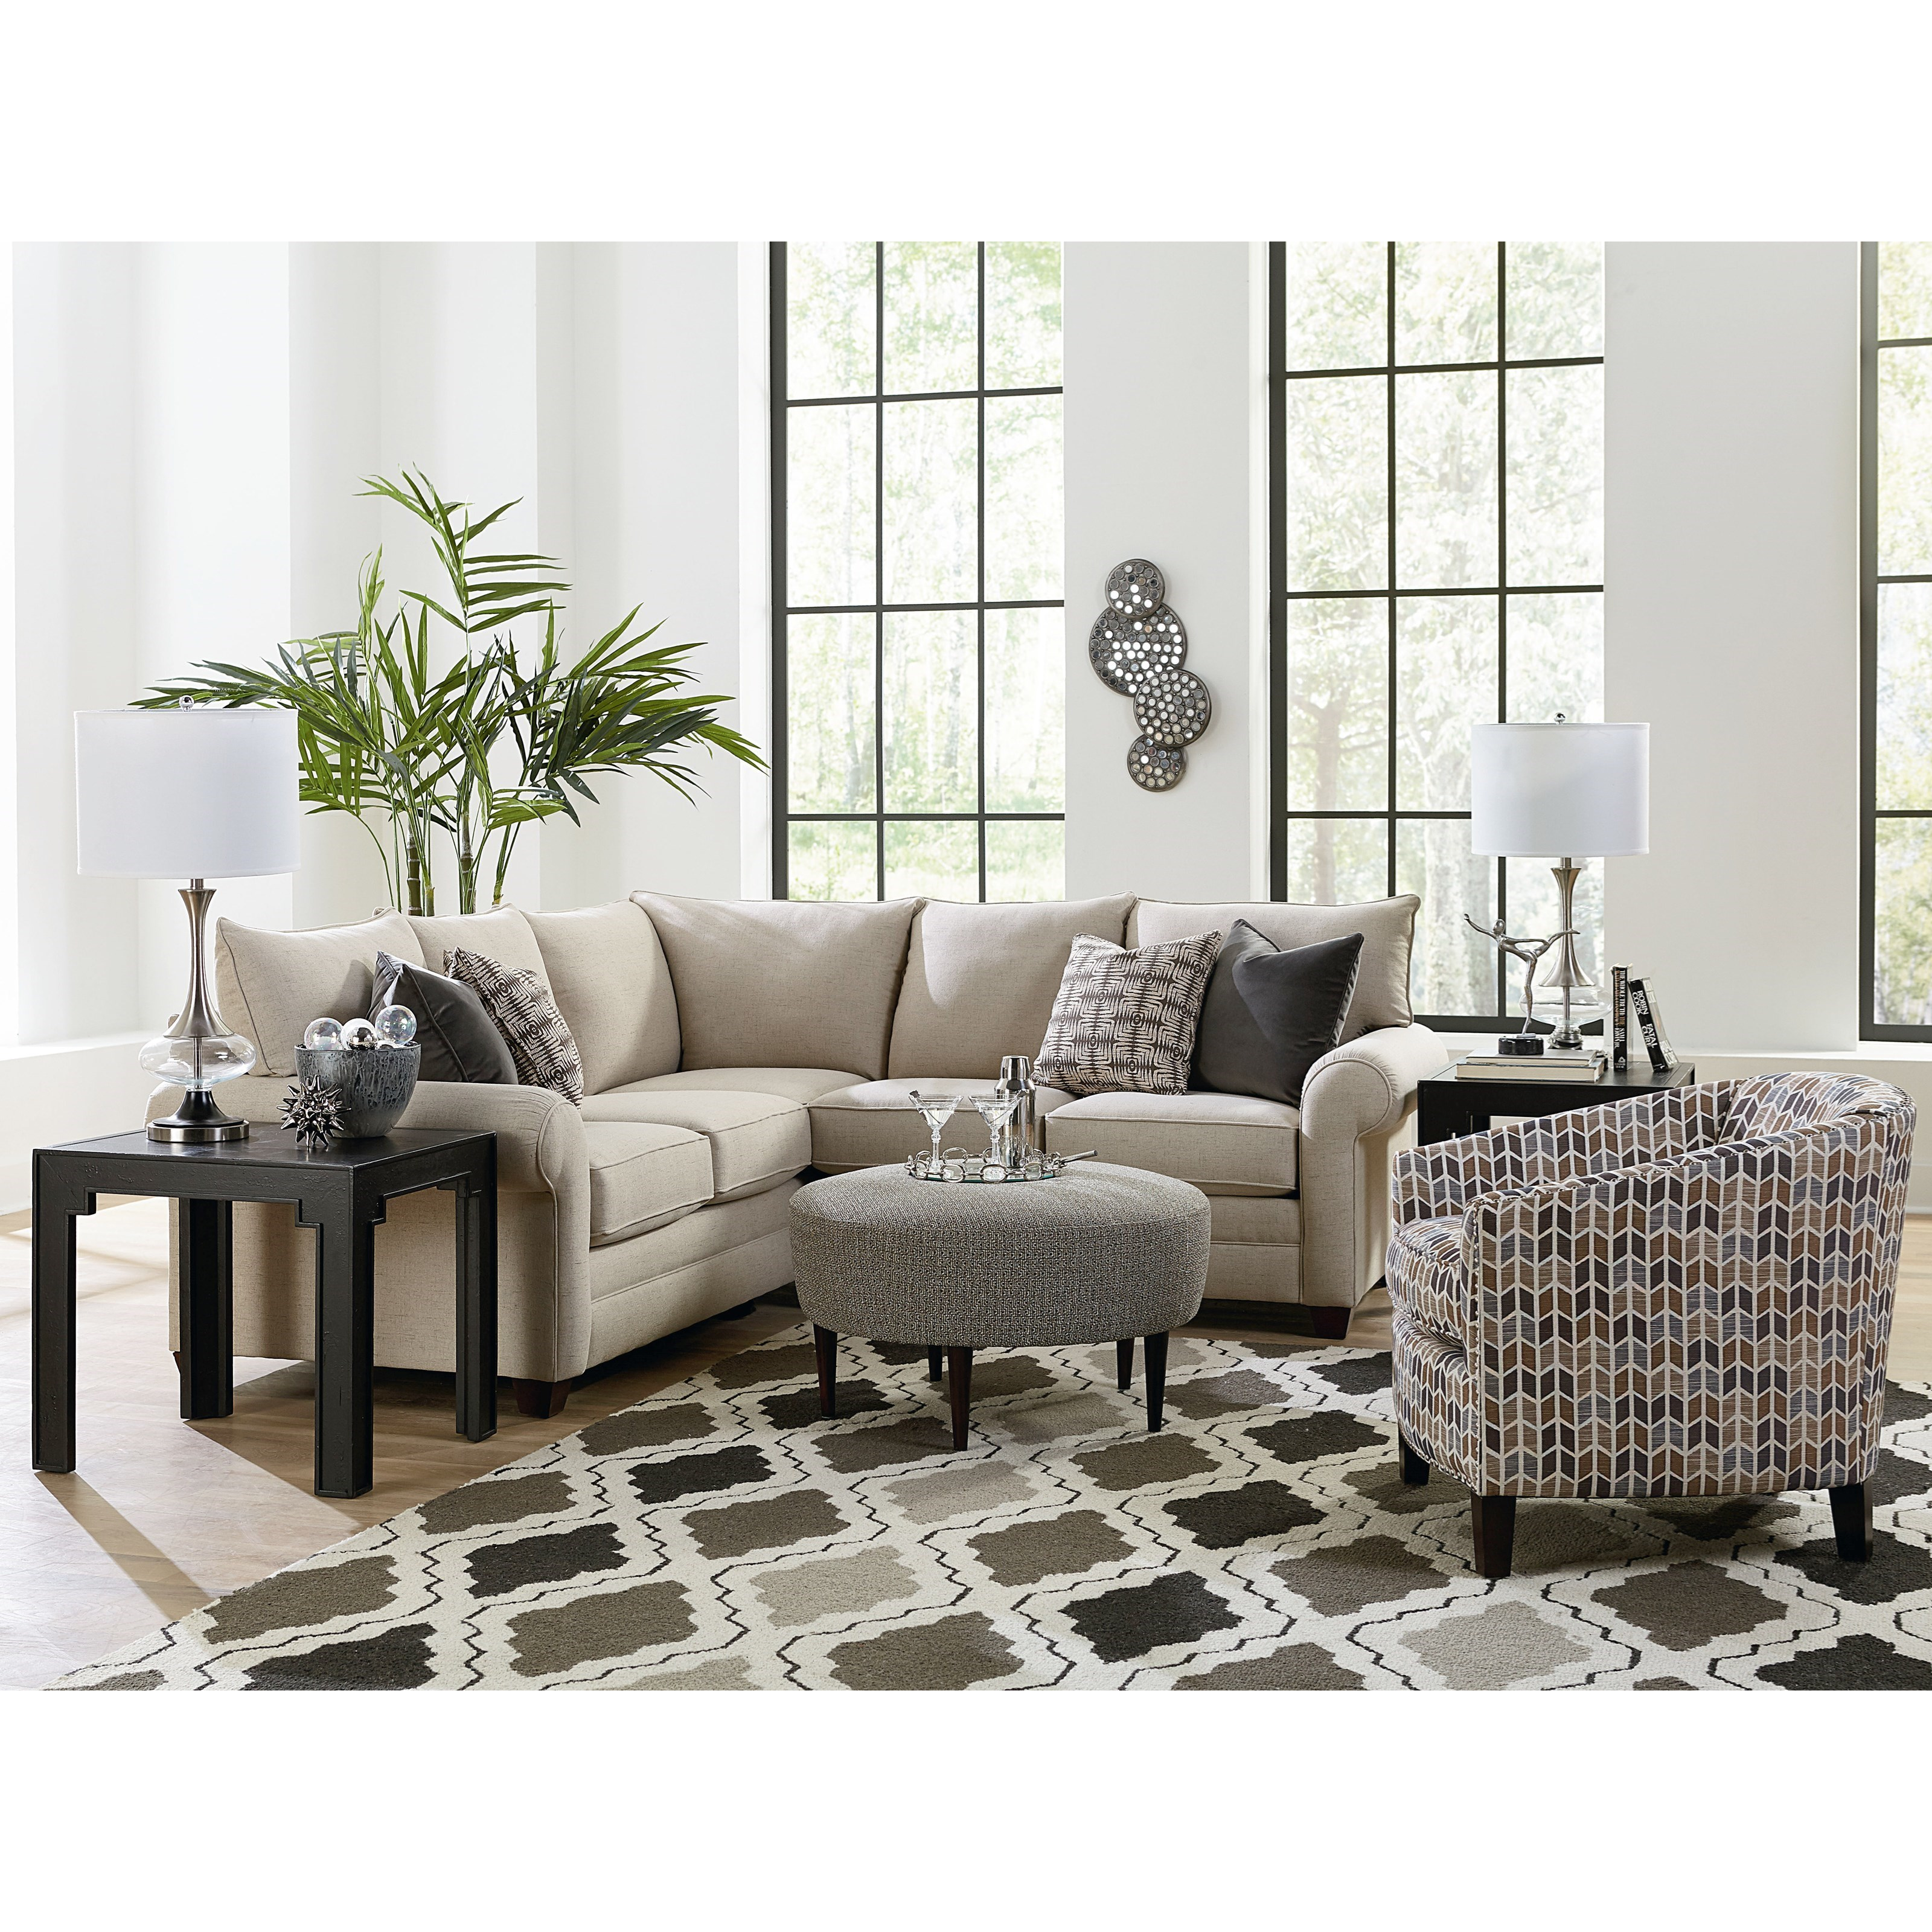 Cameron 2-Piece Sectional by Bassett at Bassett of Cool Springs